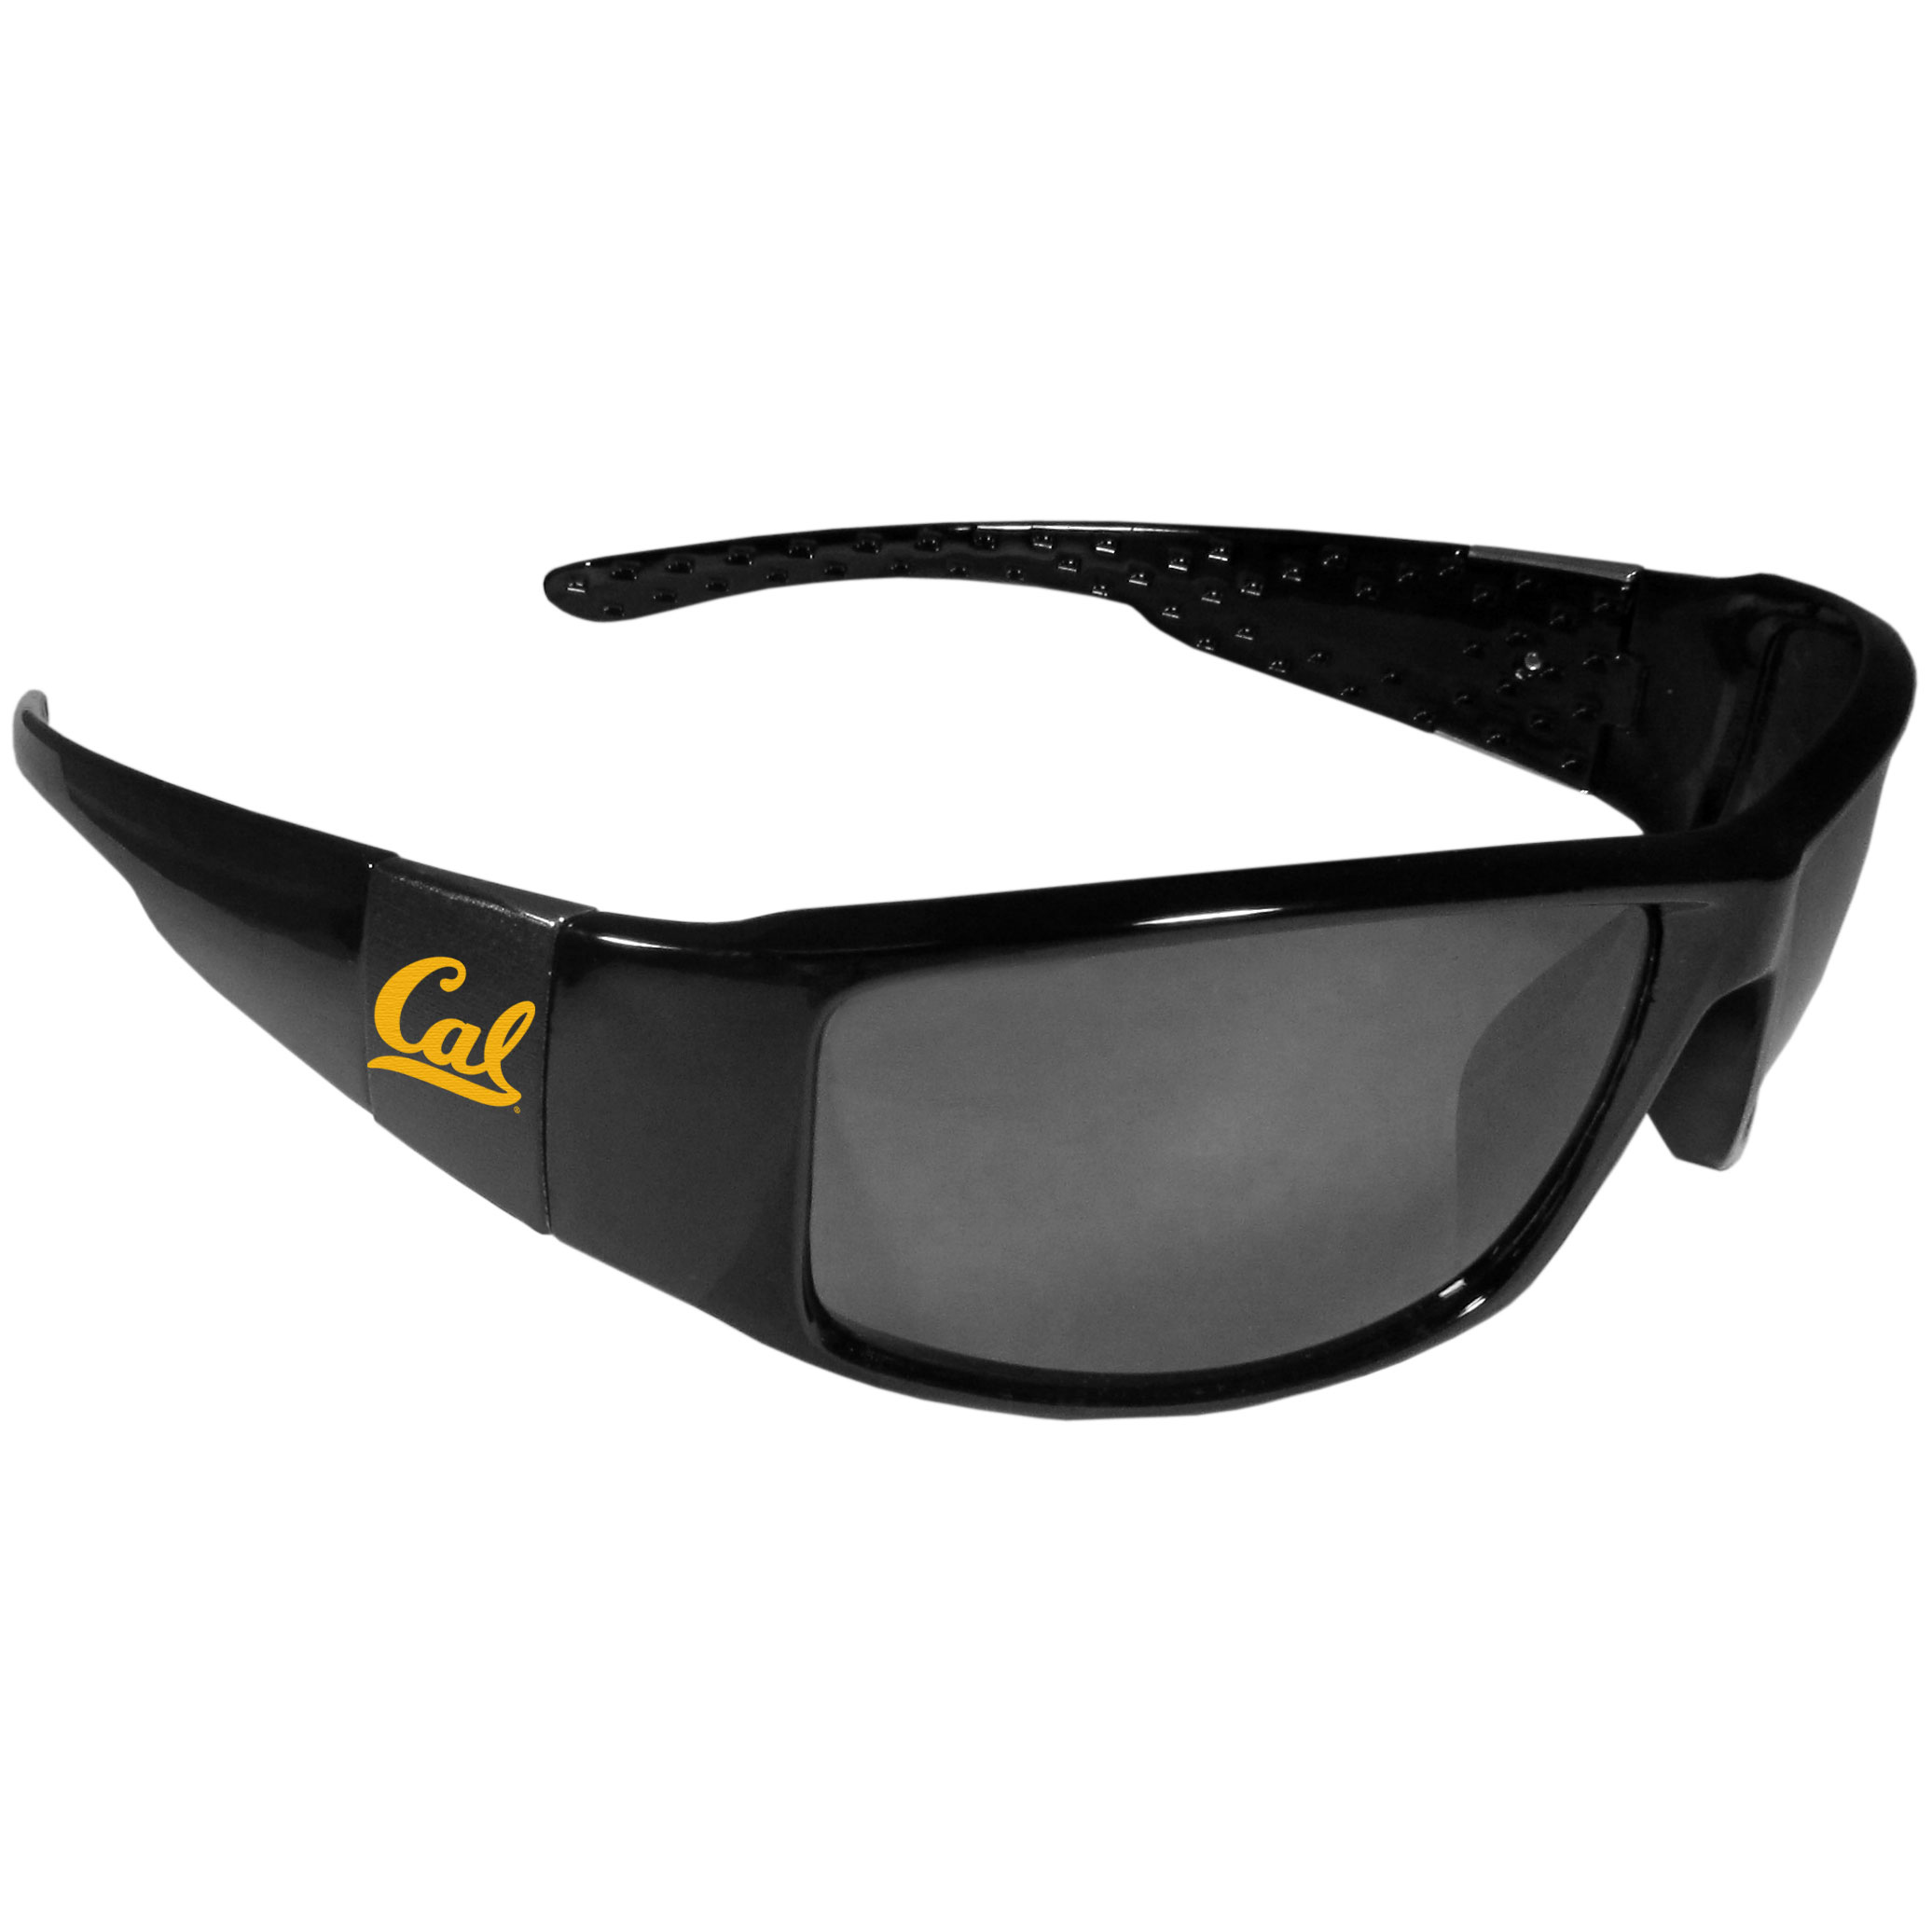 Cal Berkeley Bears Black Wrap Sunglasses - These designer inspired frames have a sleek look in all black with  Cal Berkeley Bears shields on each arm with a printed logo. The shades are perfect for any outdoor activity like; golfing, driving, hiking, fishing or cheering on the team at a tailgating event or at a home game day BBQ with a lens rating of 100% UVA/UVB for maximum UV protection. The high-quality frames are as durable as they are fashionable and with their classic look they are the perfect fan accessory that can be worn everyday for every occasion.